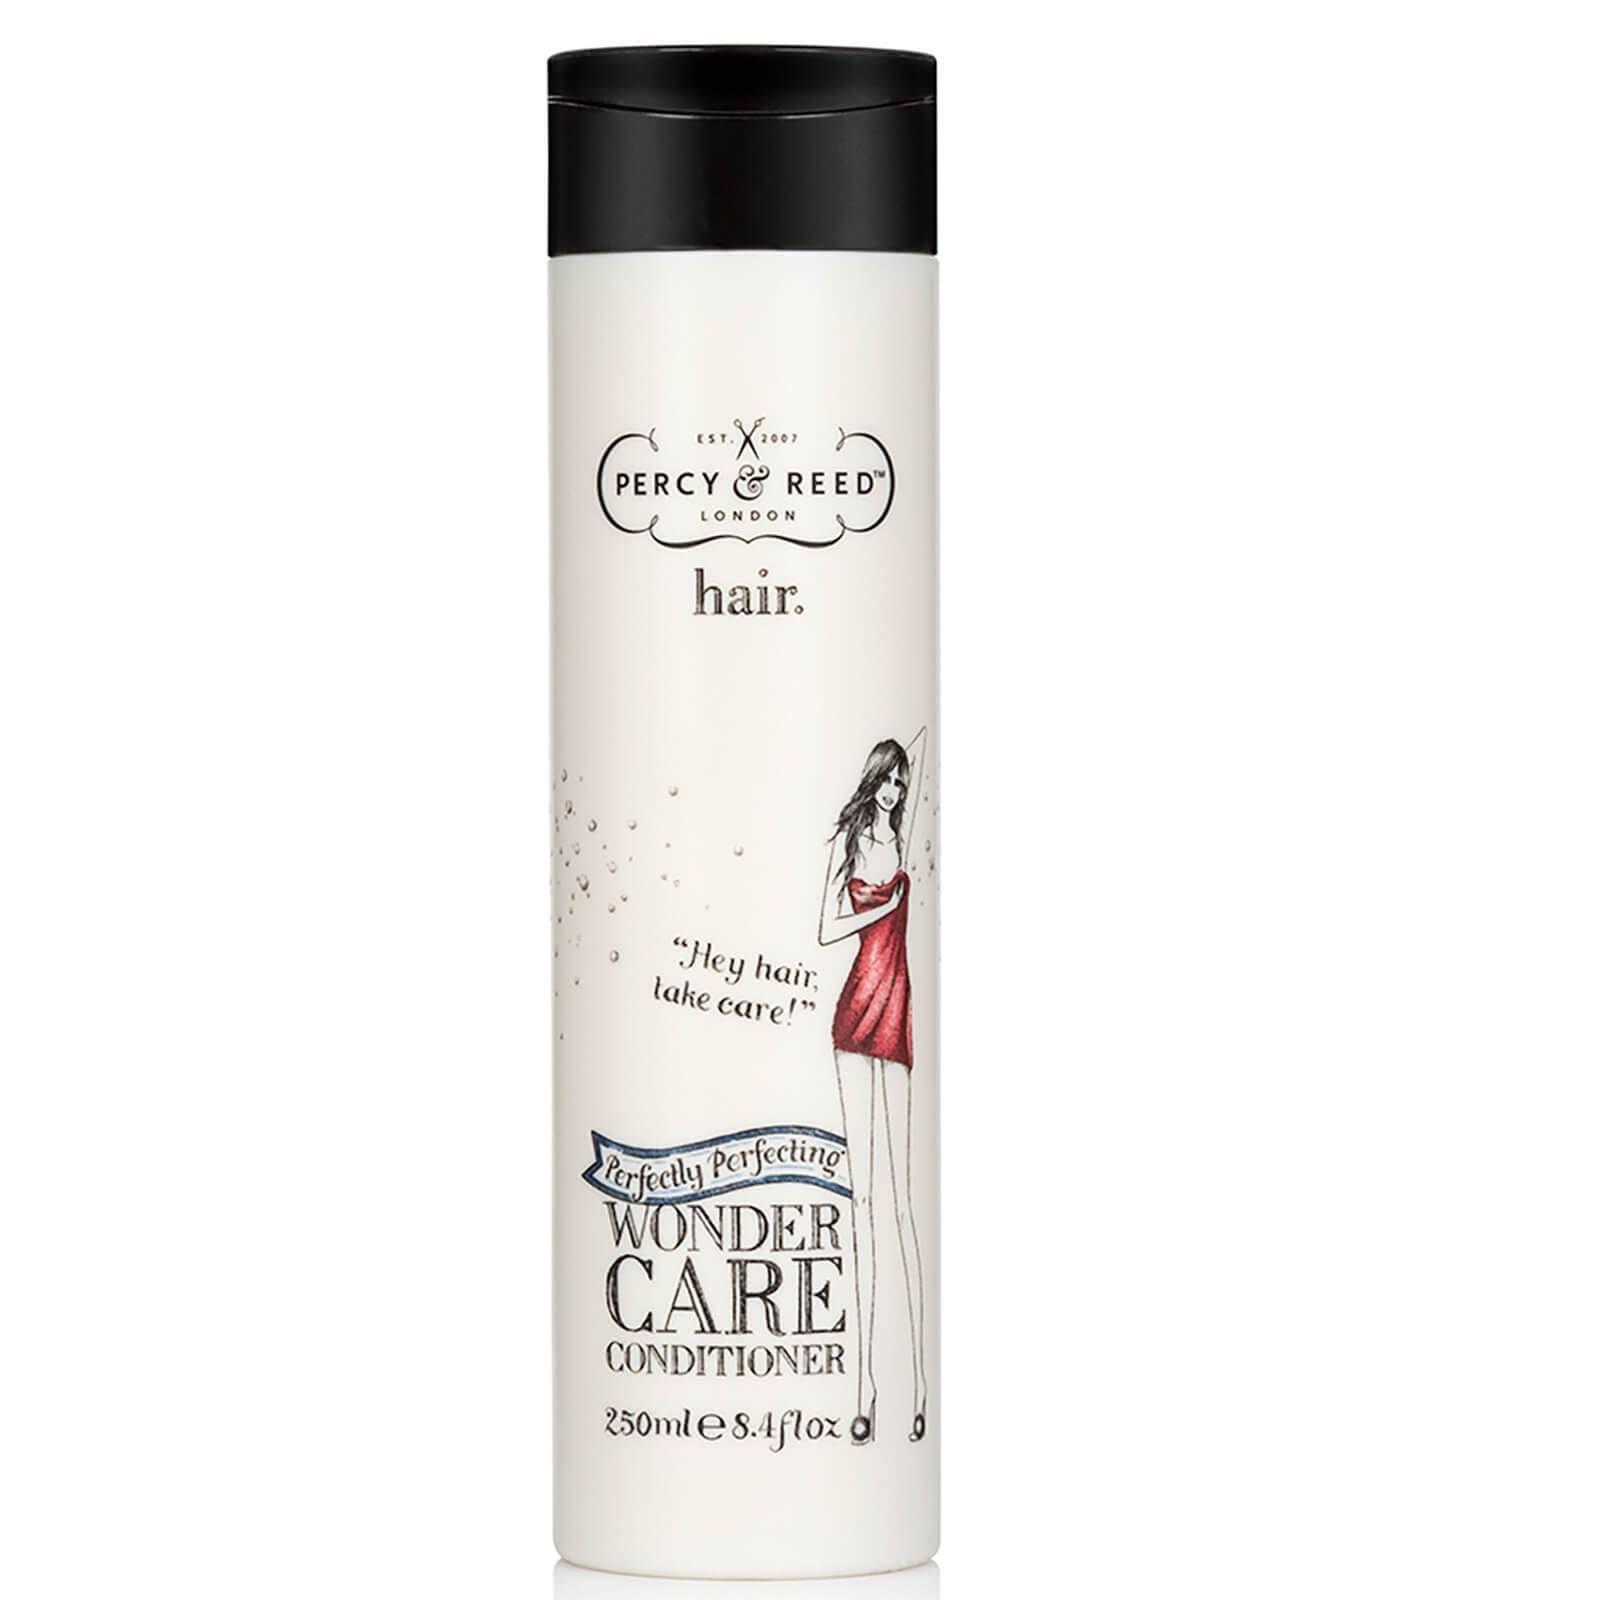 Percy & Reed Perfectly Perfecting Wonder Care Conditioner - 250ml